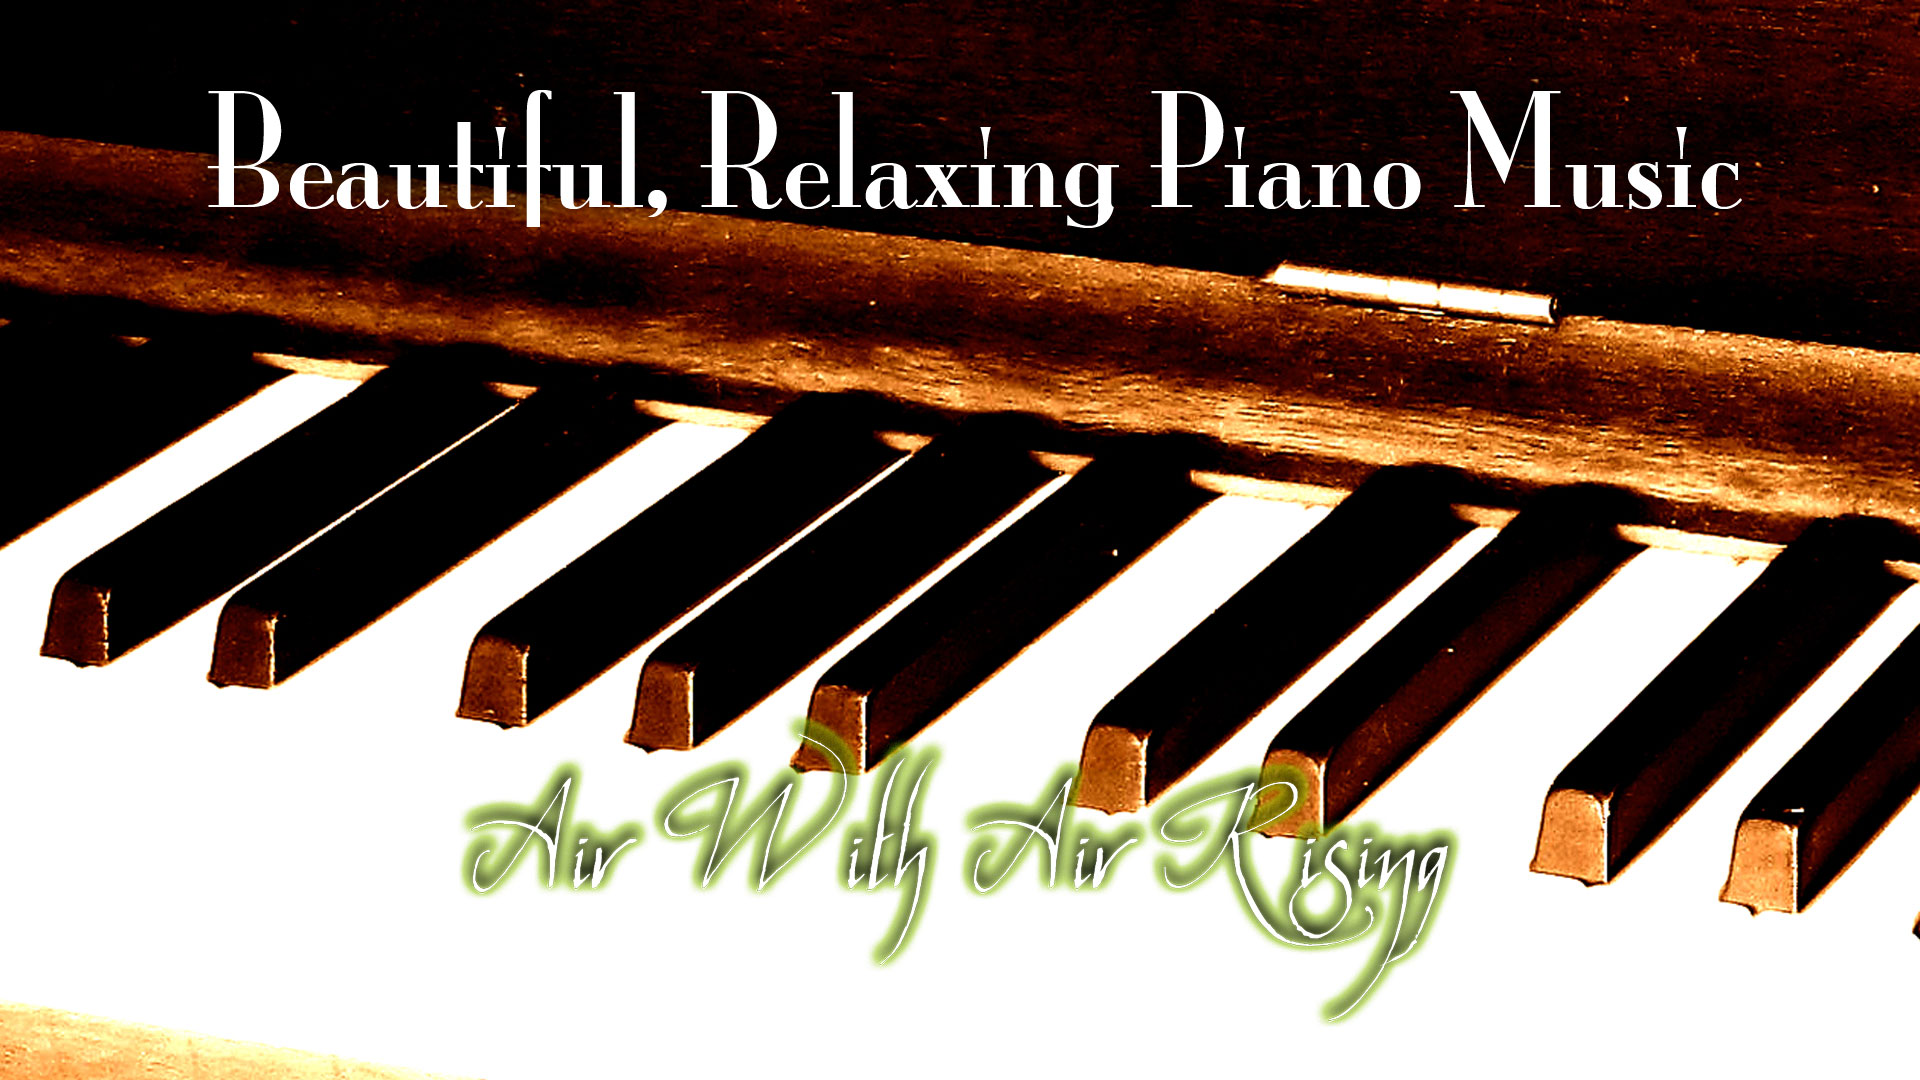 RPG Maker MV - Beautiful Relaxing Piano Music Steam Discovery